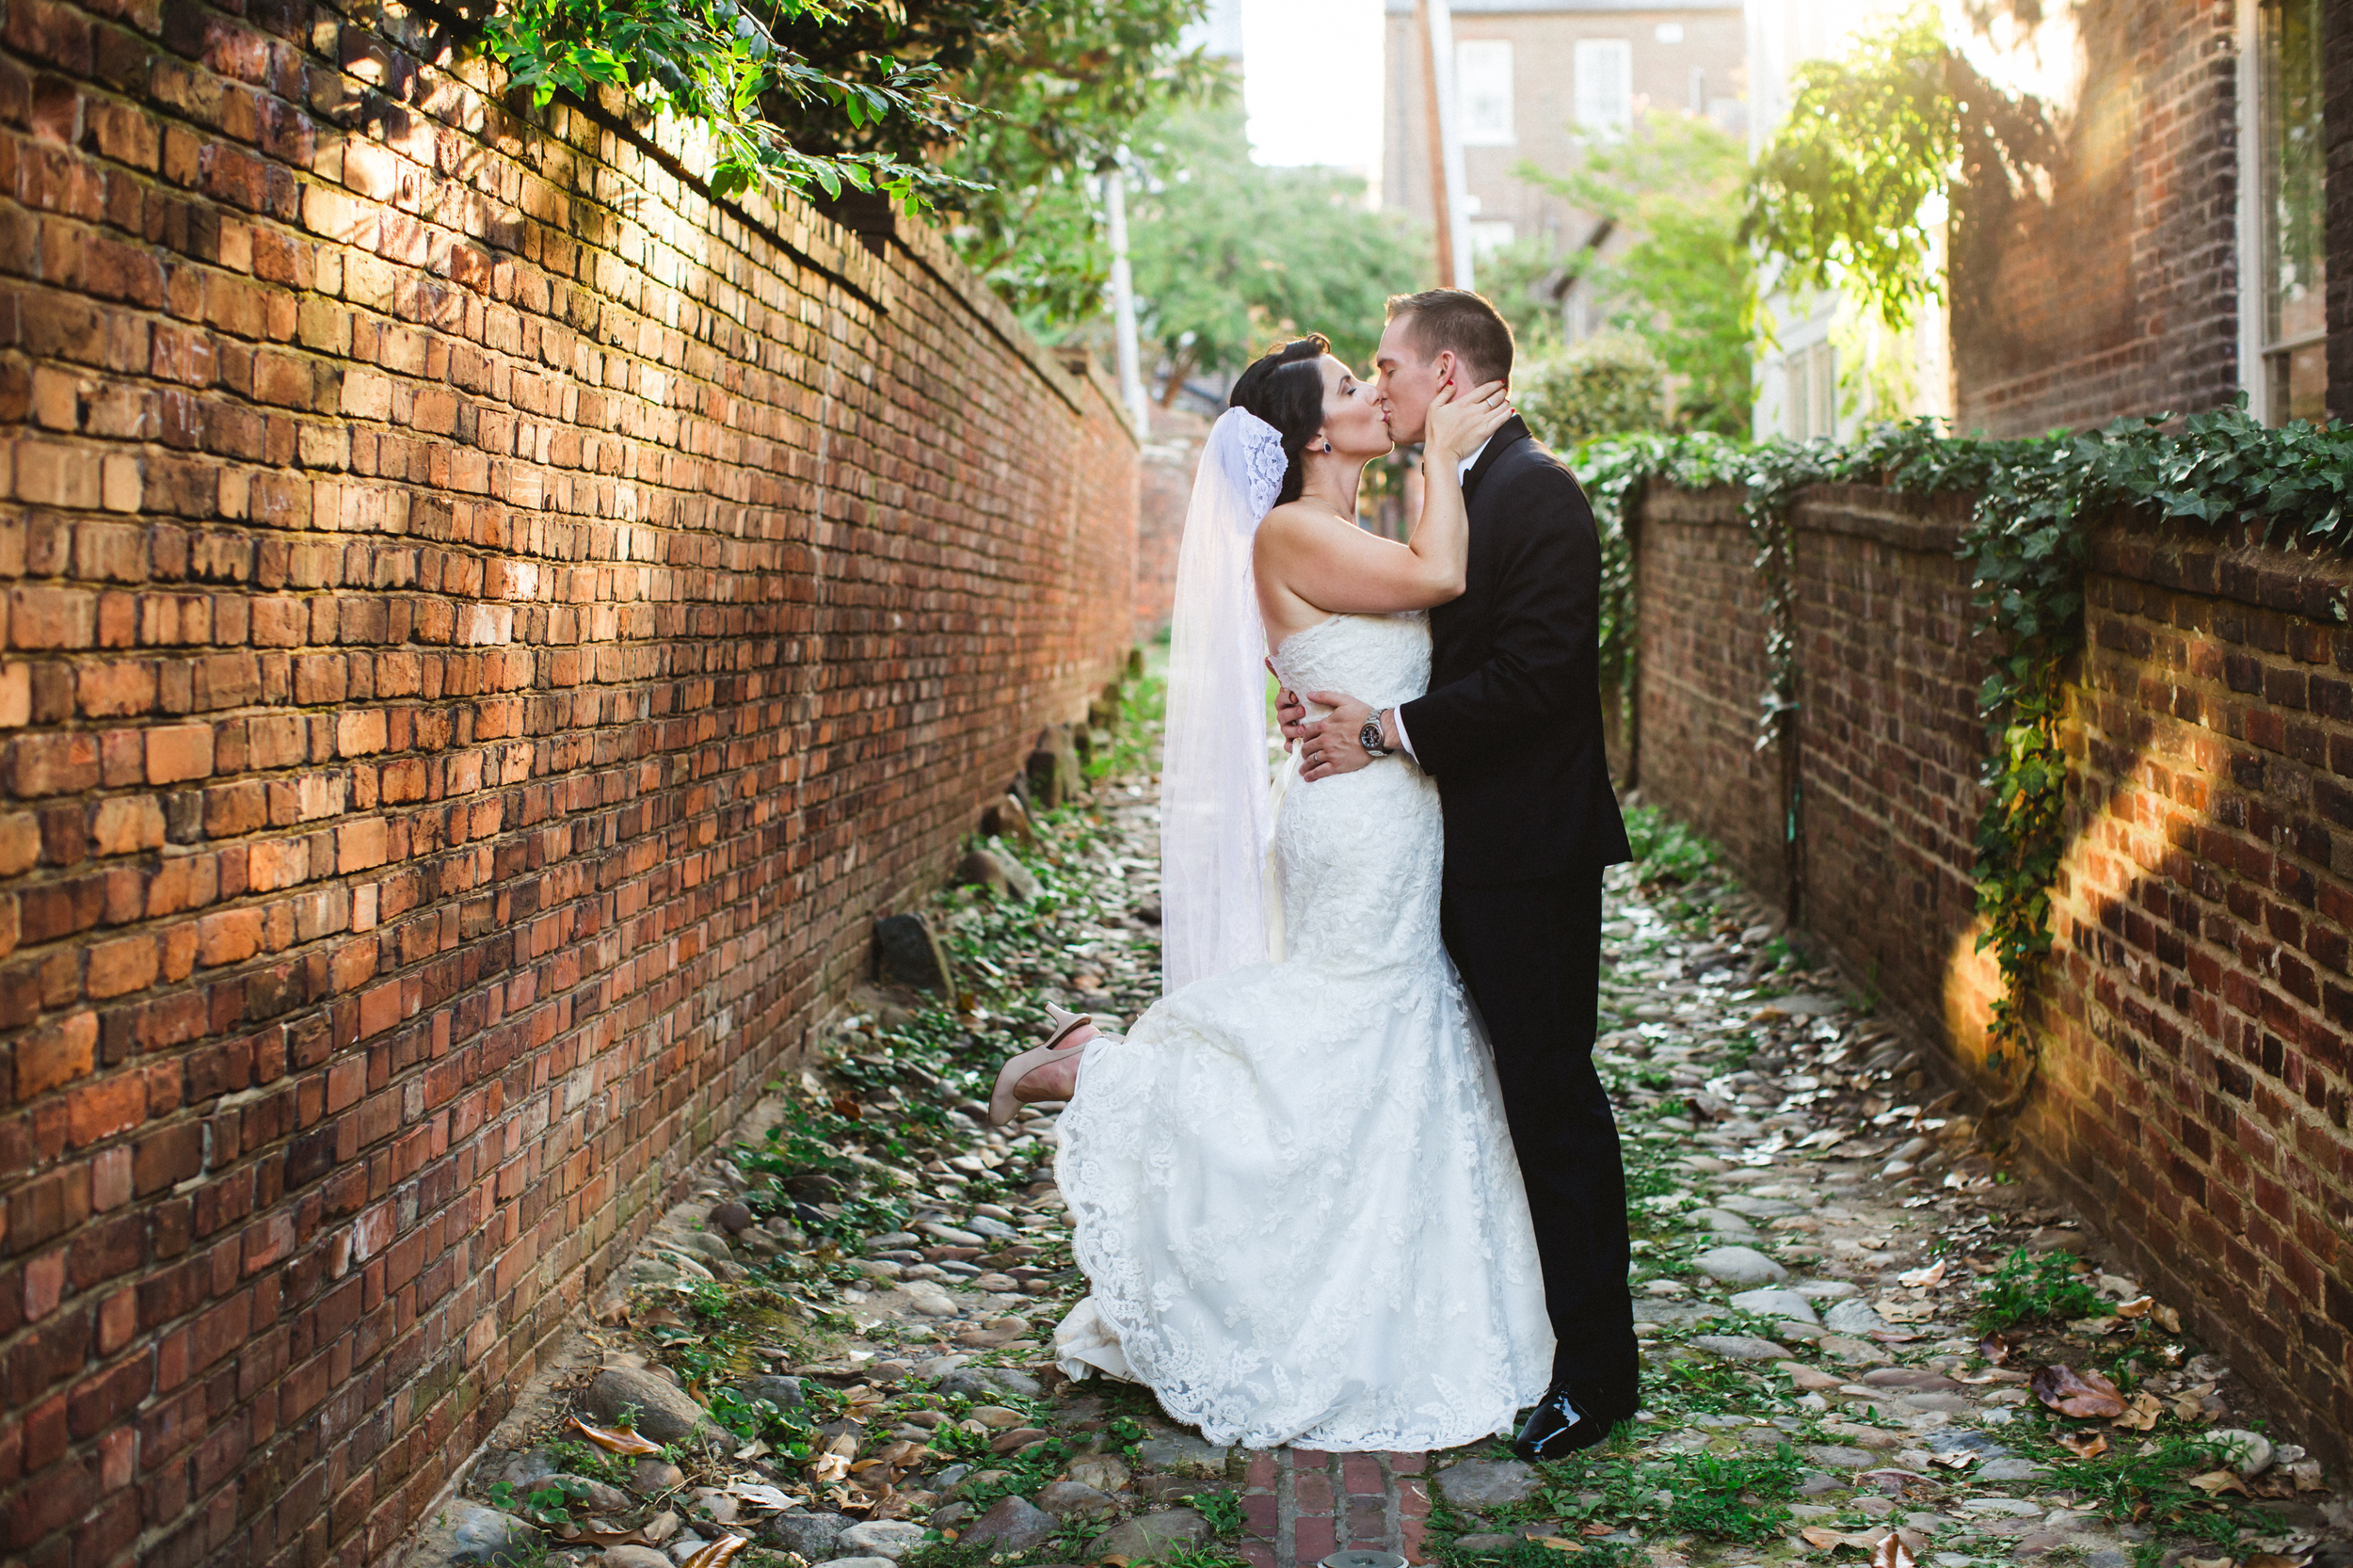 Vness_Photography_Wedding_Photographer_Washington-DC_Fish_Wedding-688.JPG